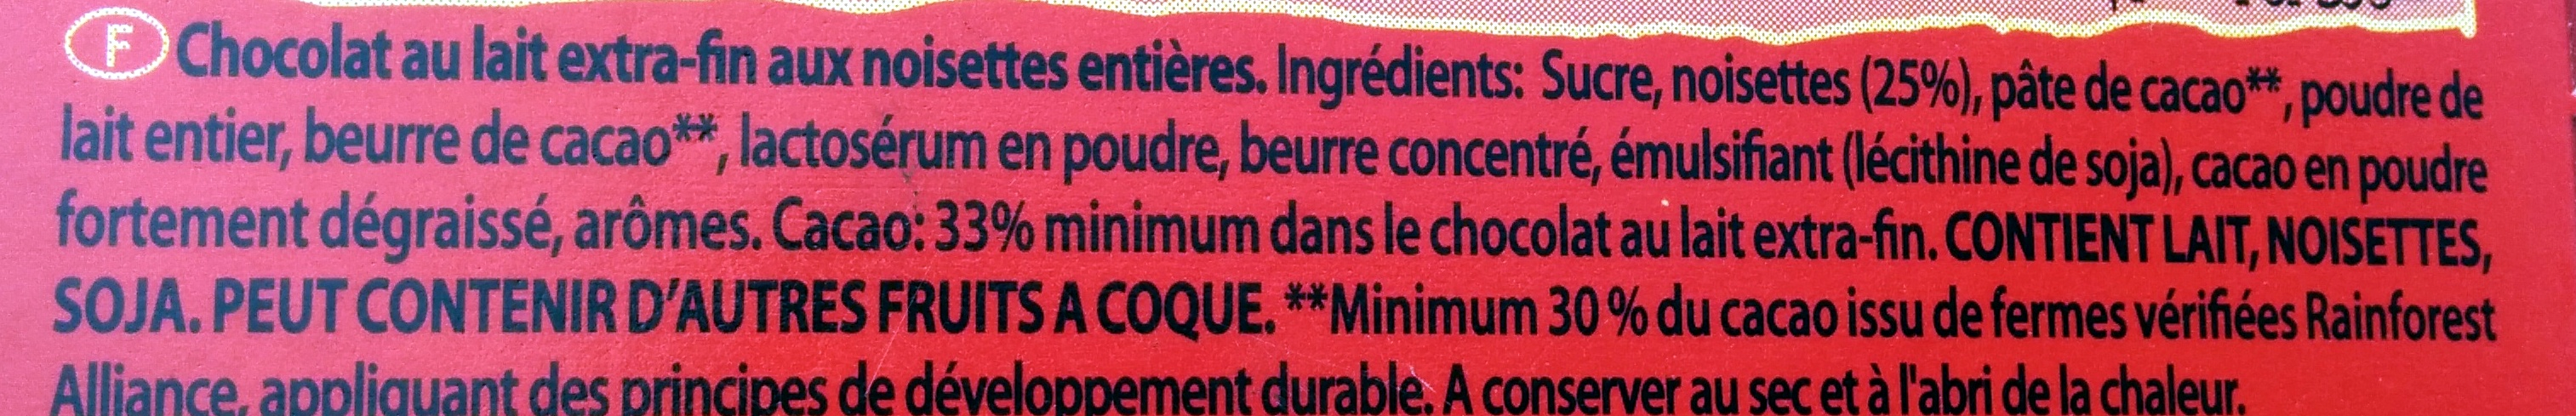 cote d'or lait noisette - Ingredients